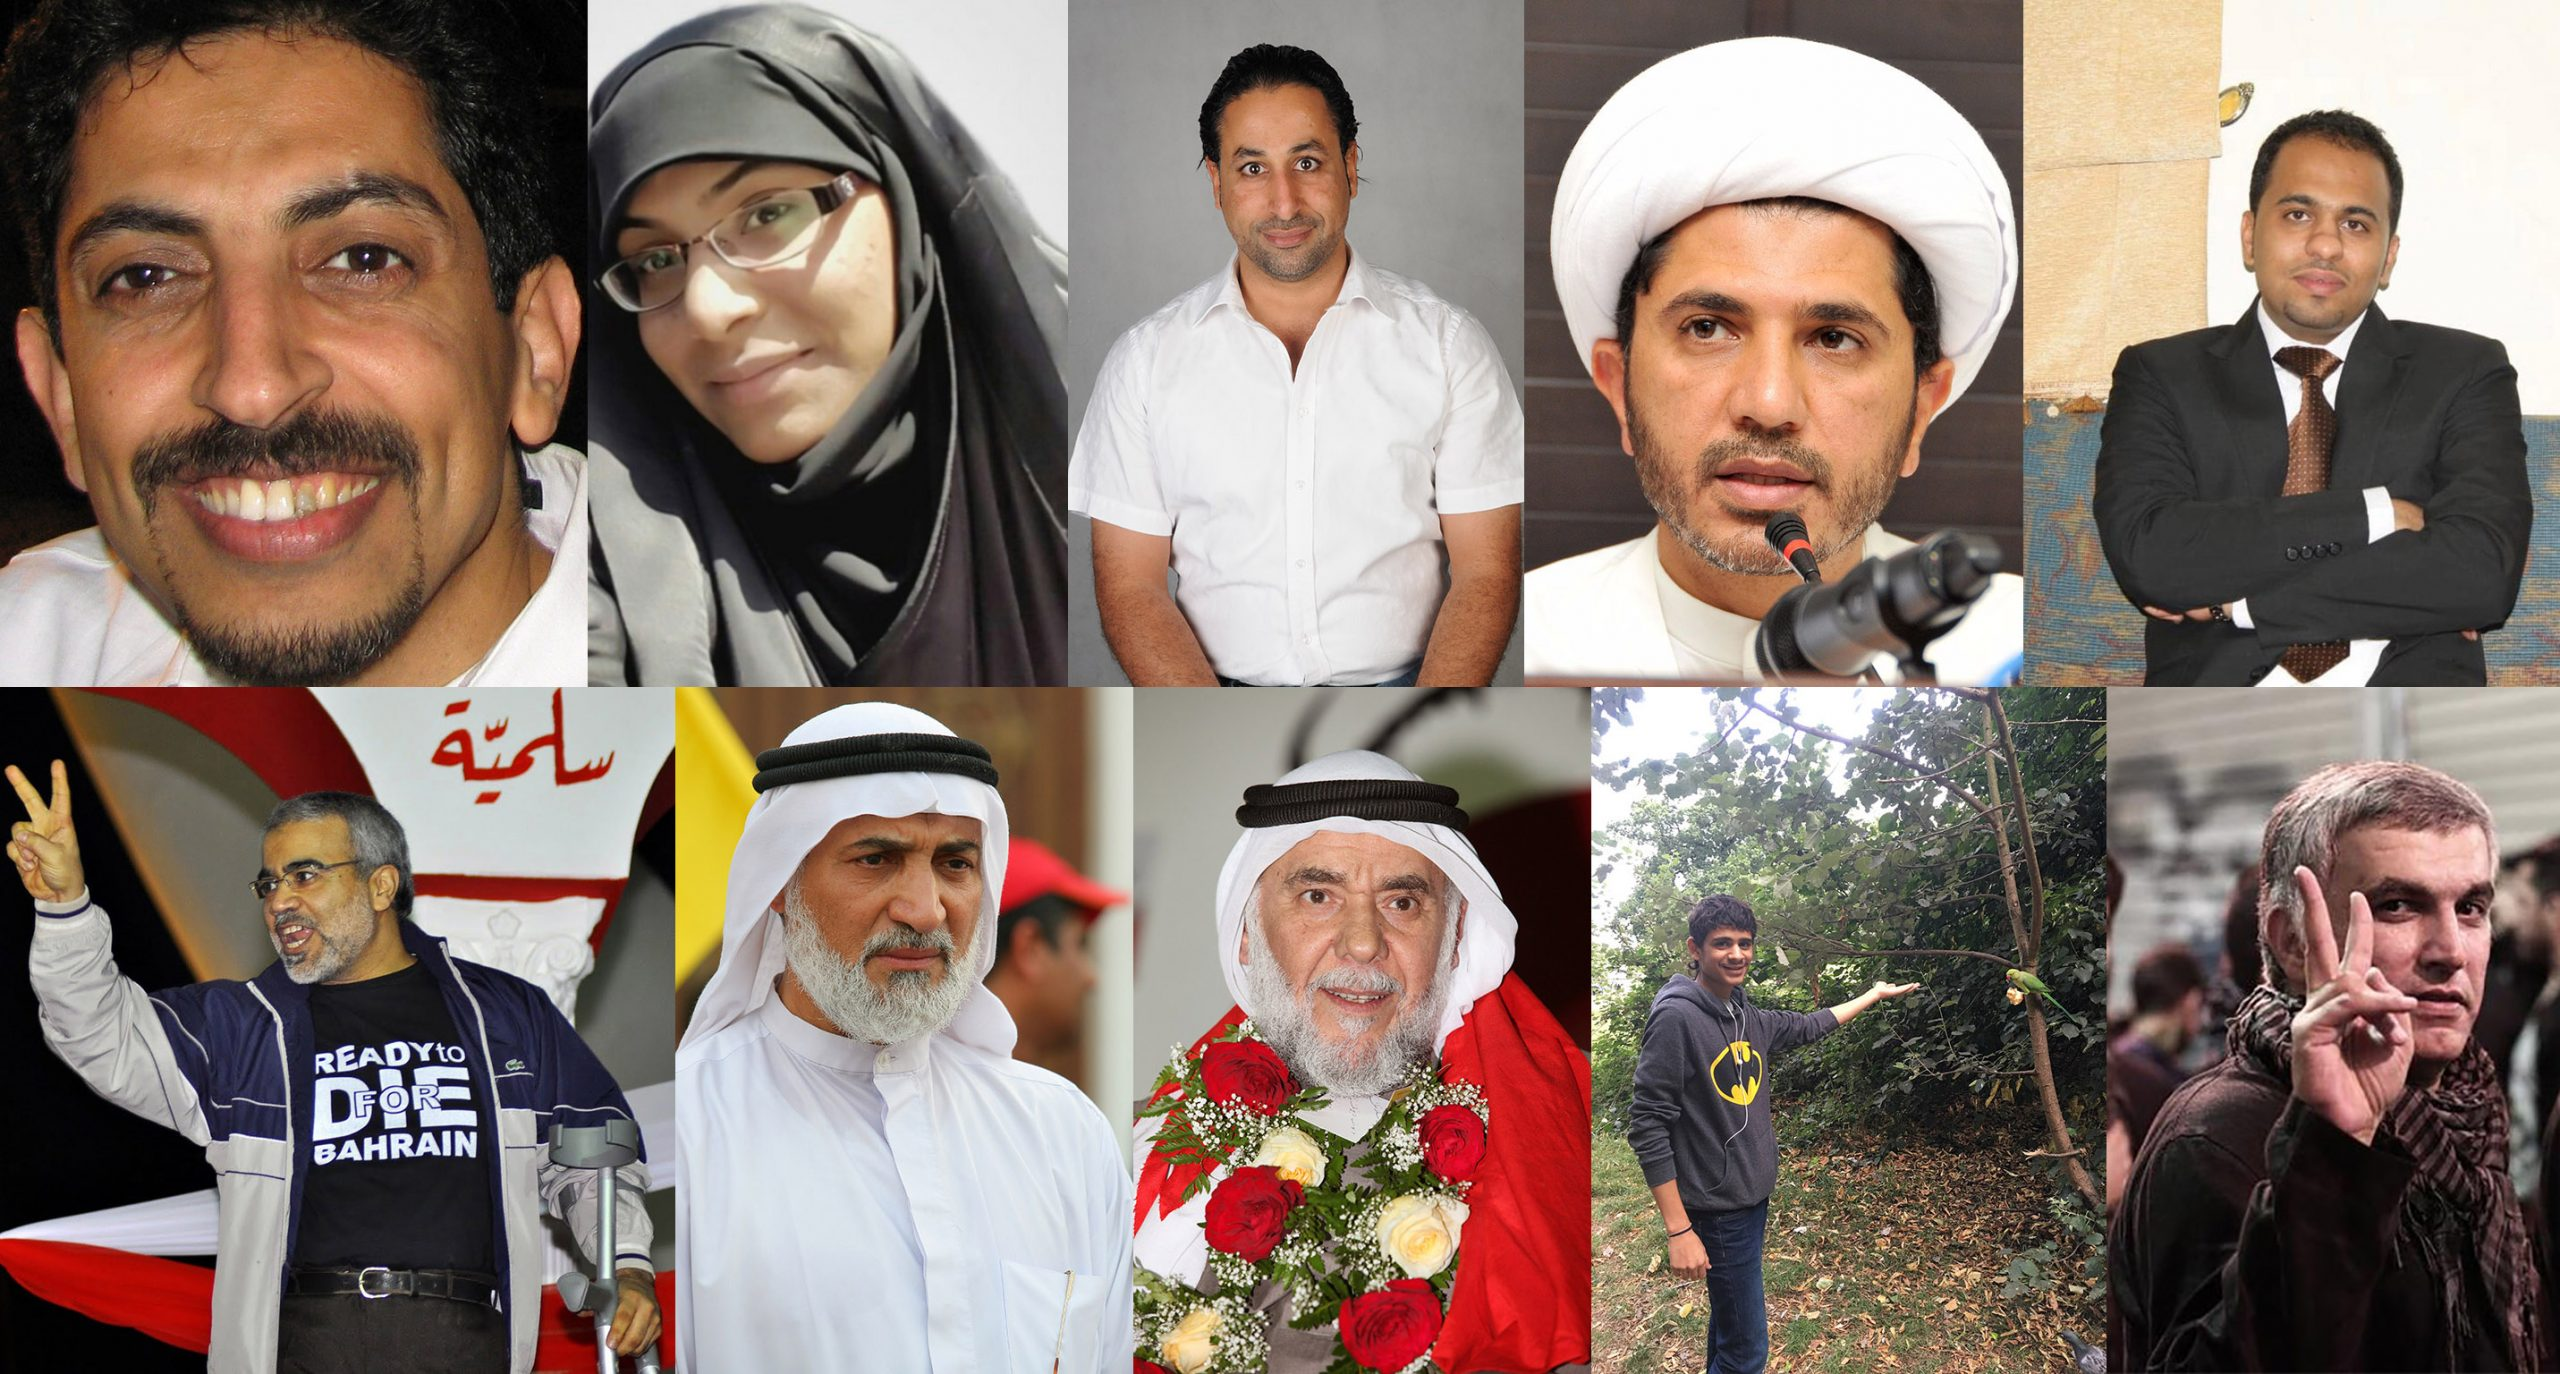 Bahrain: Peaceful activists must be released amid COVID-19 pandemic